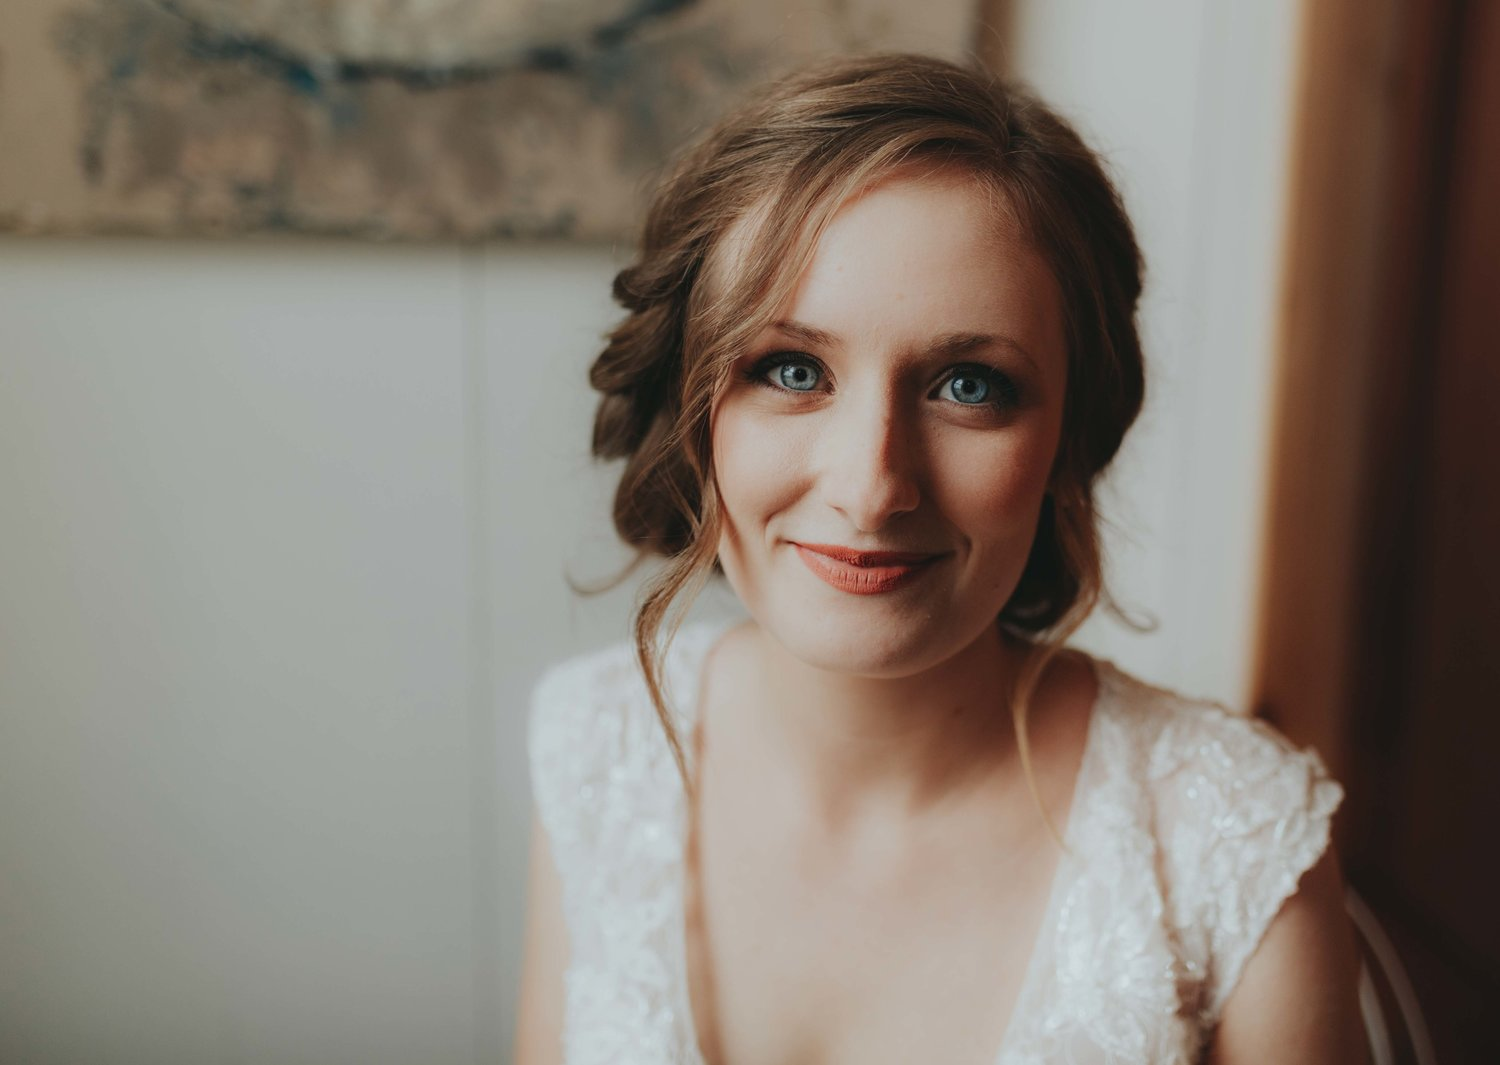 gorgeous bridal portraits natural beauty by Emily Anne Photo Art wedding photographer in Franklin Emily Anne at classic rustic look Allenbrooke Farms